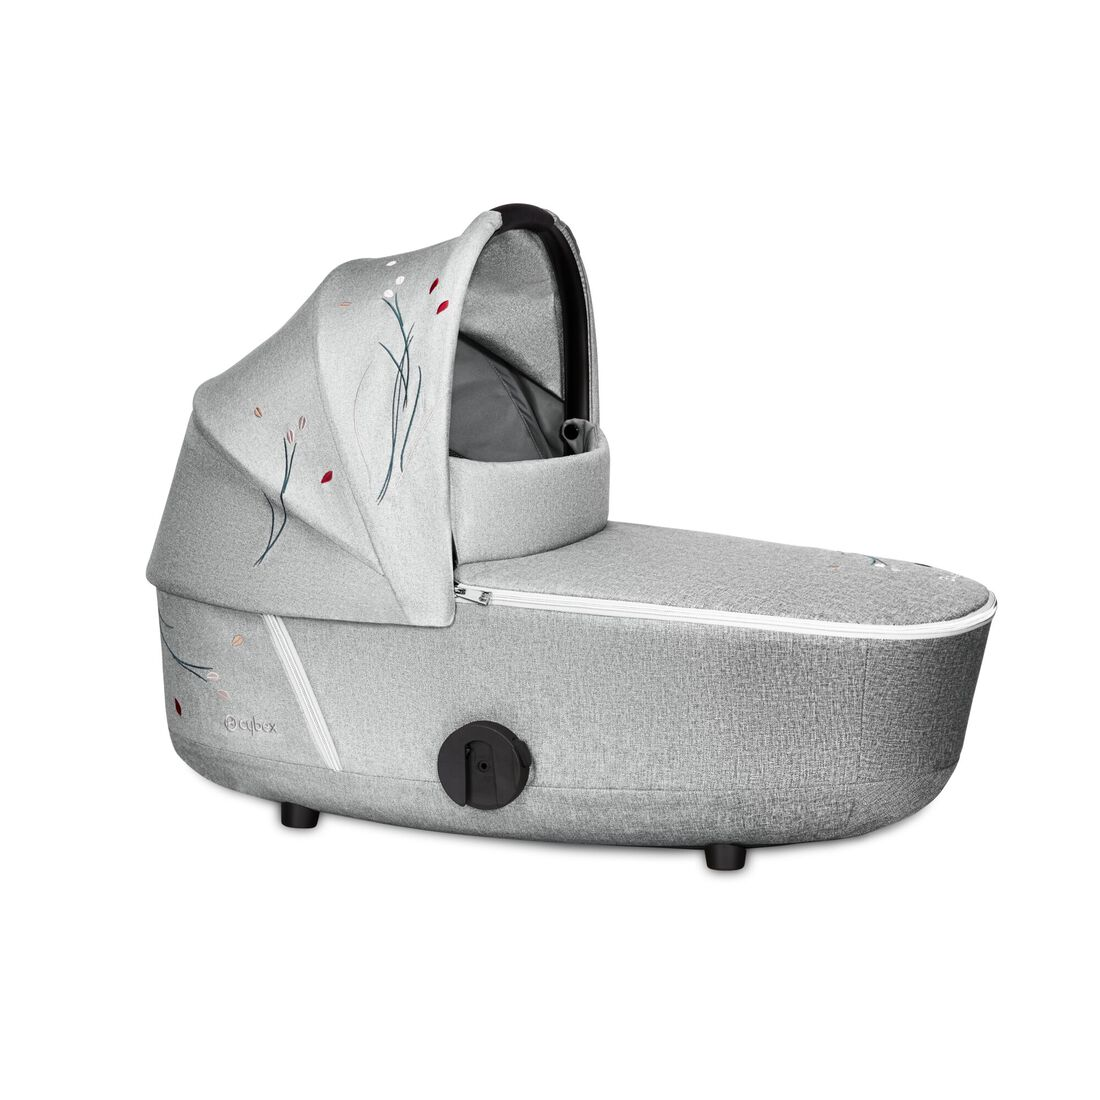 CYBEX Mios Lux Carry Cot - Koi in Koi large Bild 1